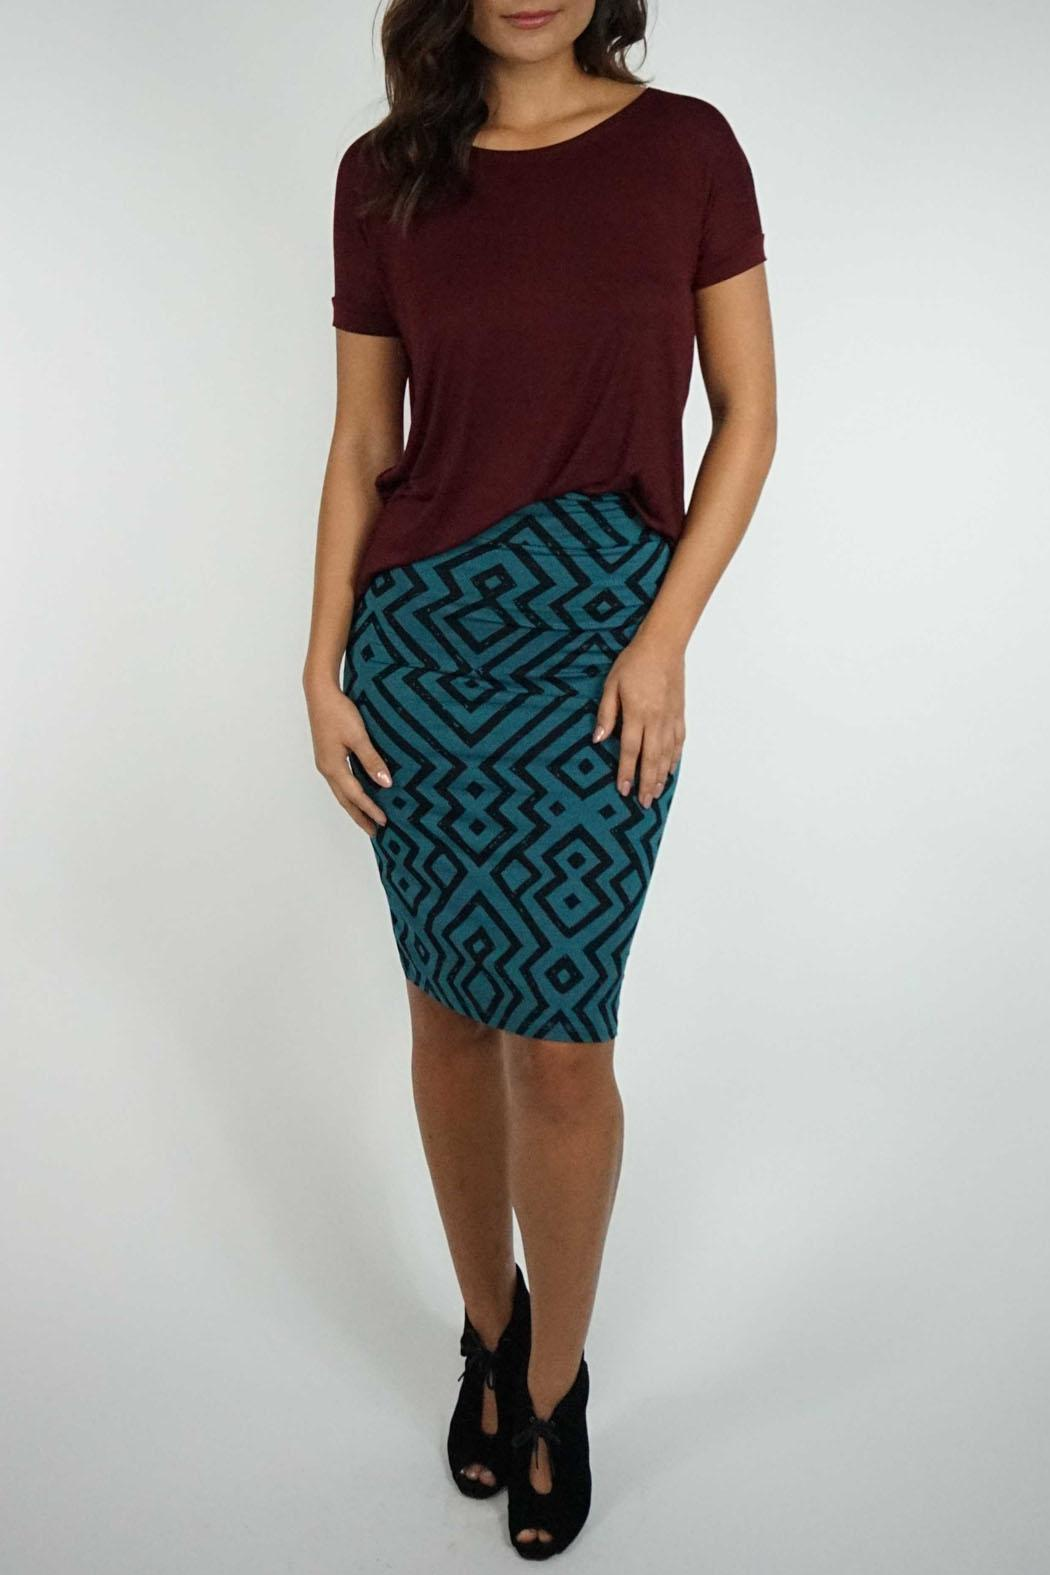 florencia arias midi fitted skirt from hawaii by the butik